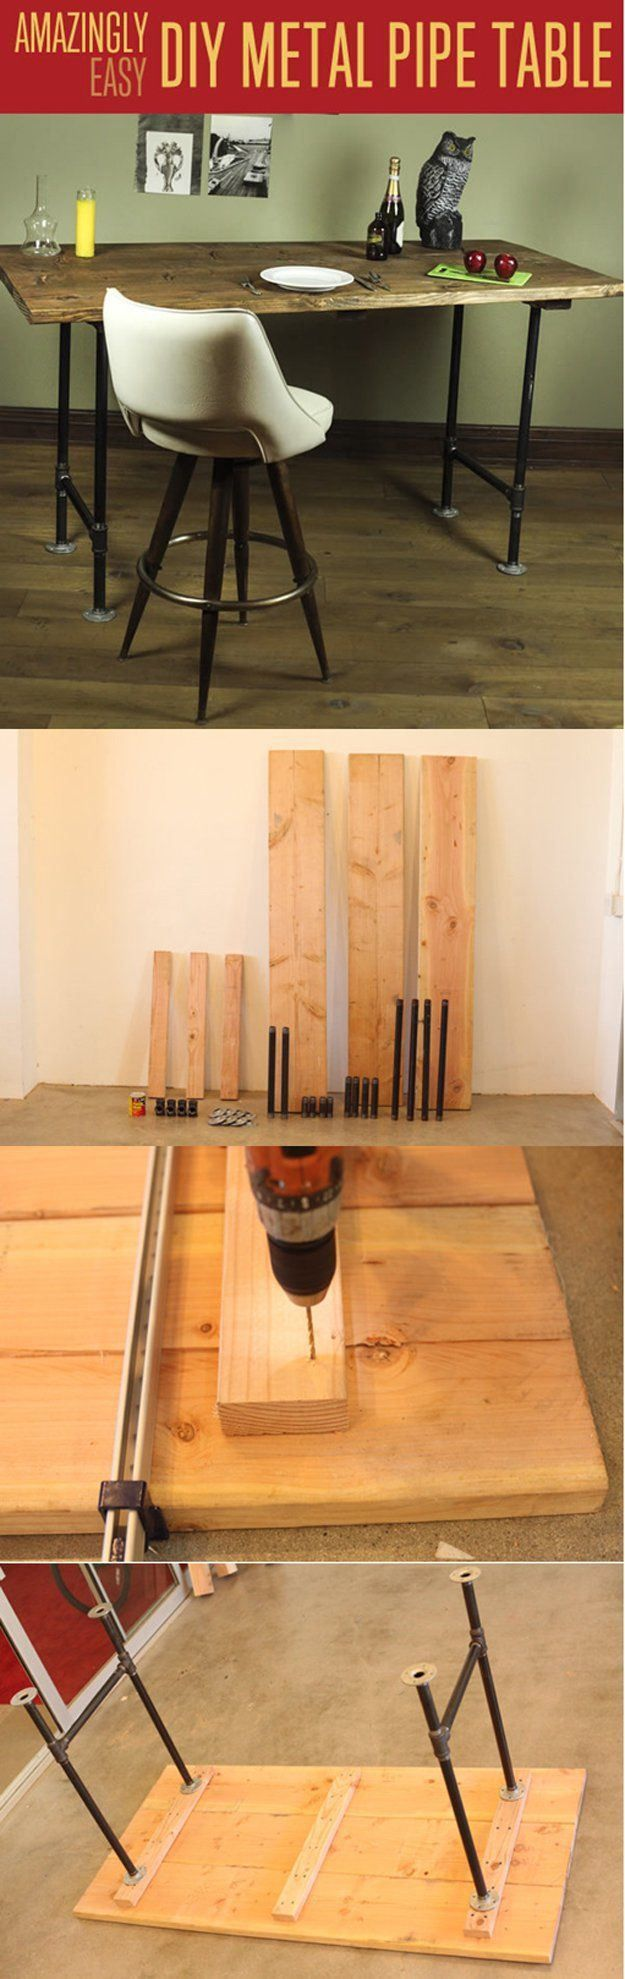 27 of the easiest woodworking projects for beginners. Including this DIY metal pipe table